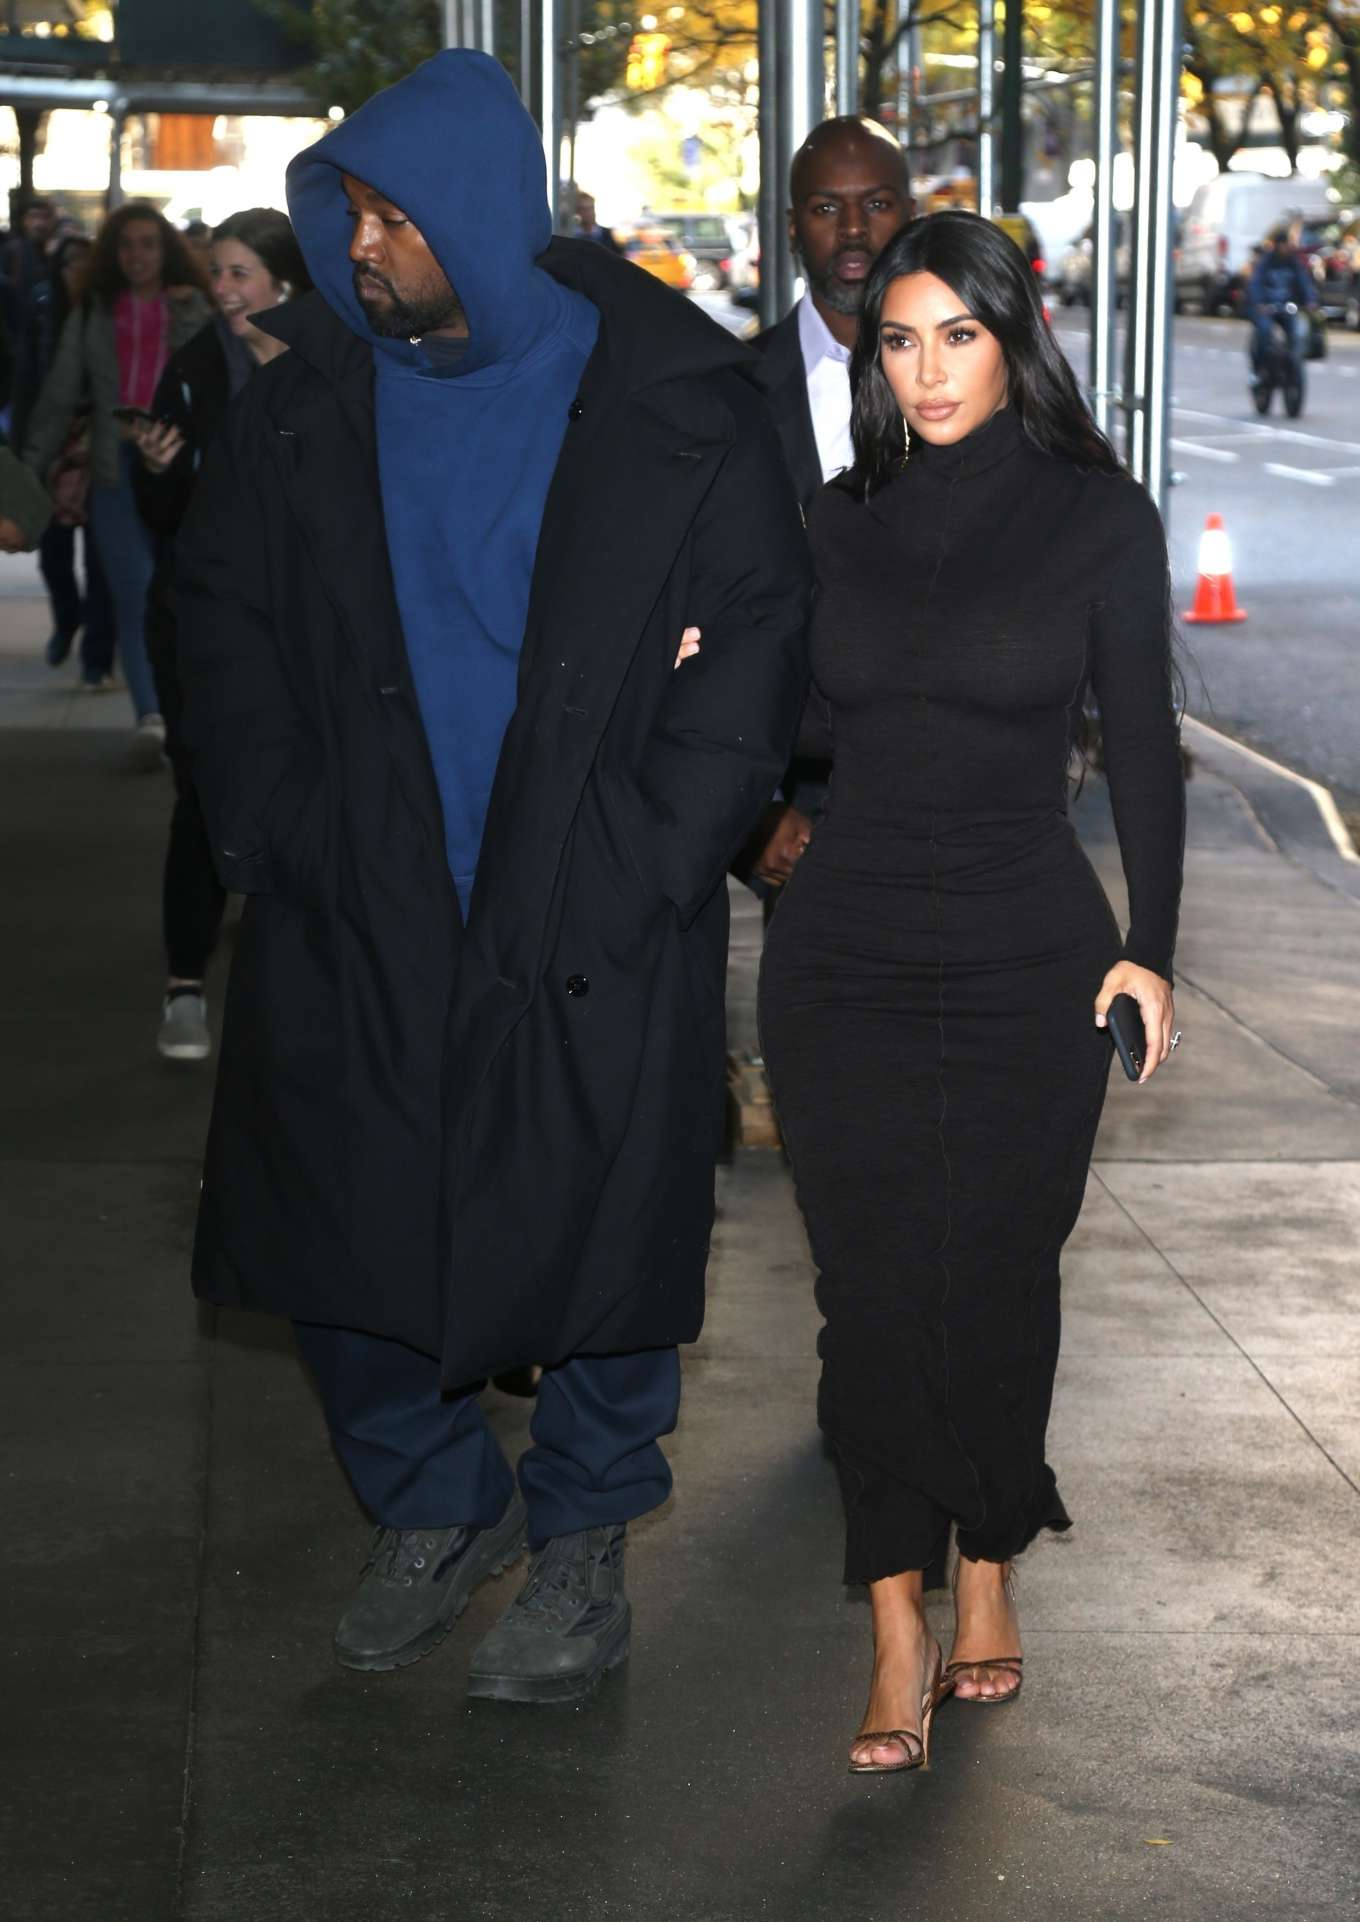 Kim Kardashian wearing a Formfitting black dress with full sleeves, striped and a turtleneck